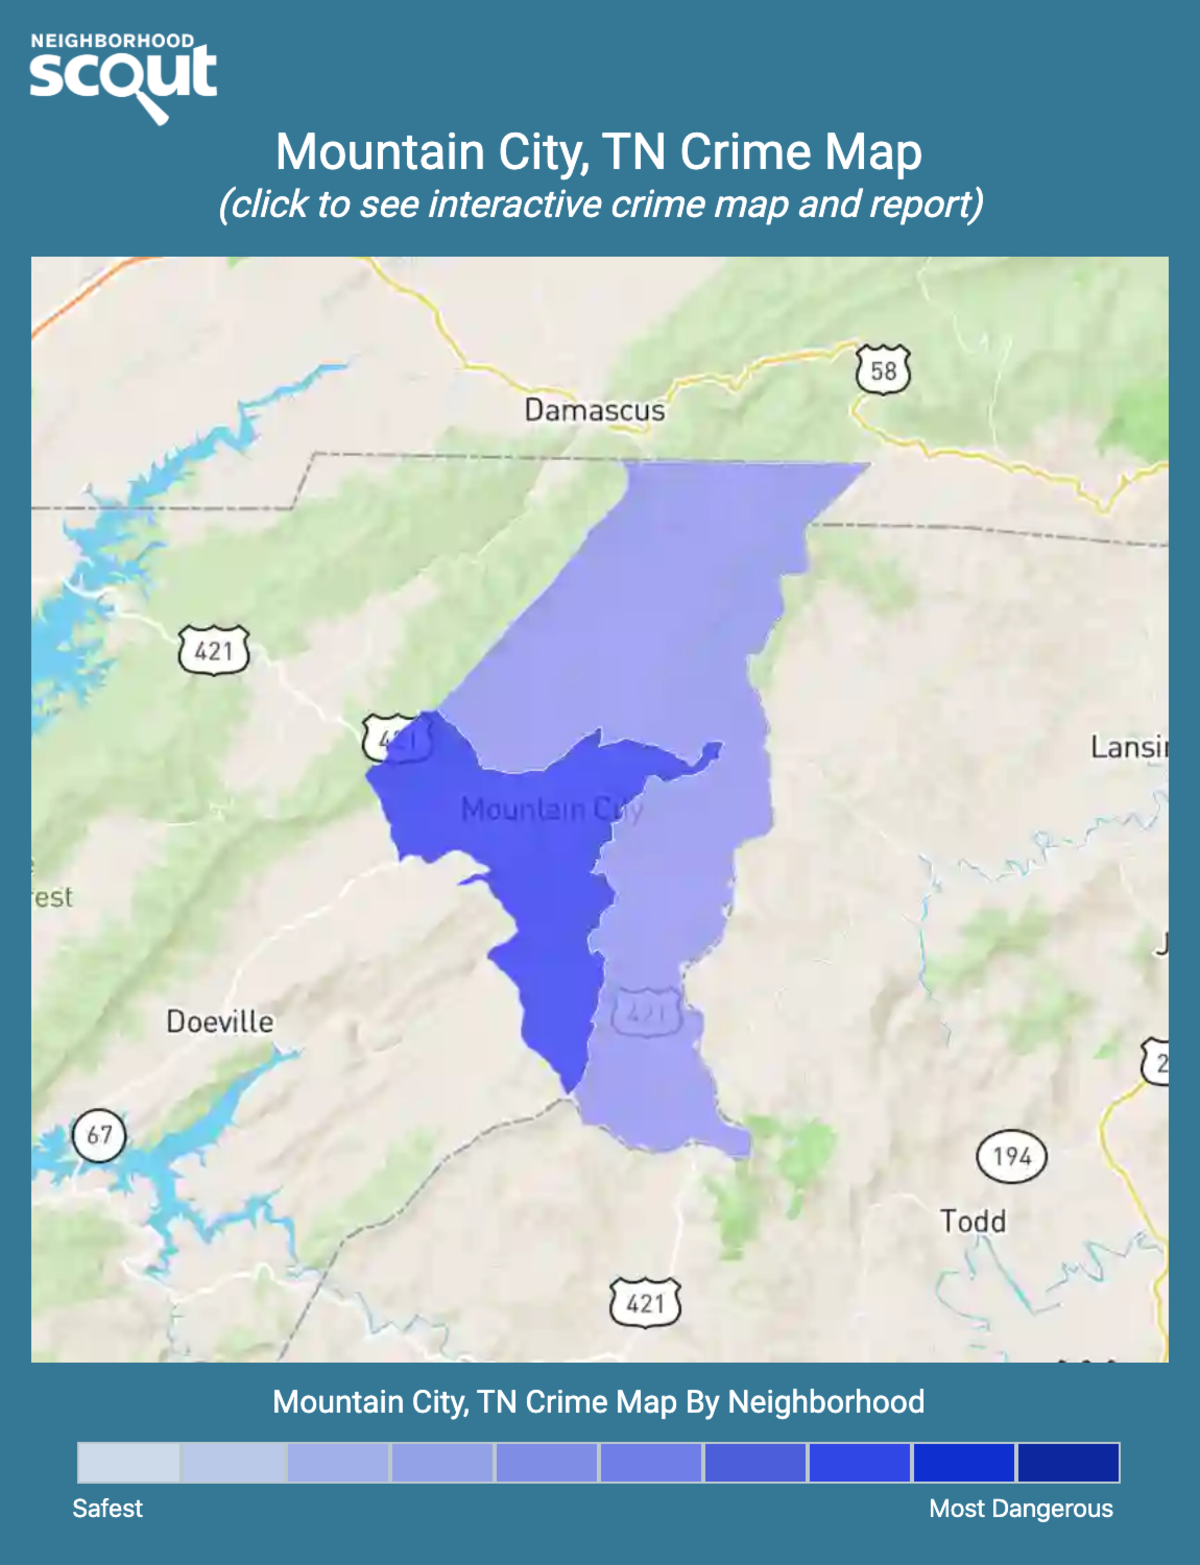 Mountain City, Tennessee crime map